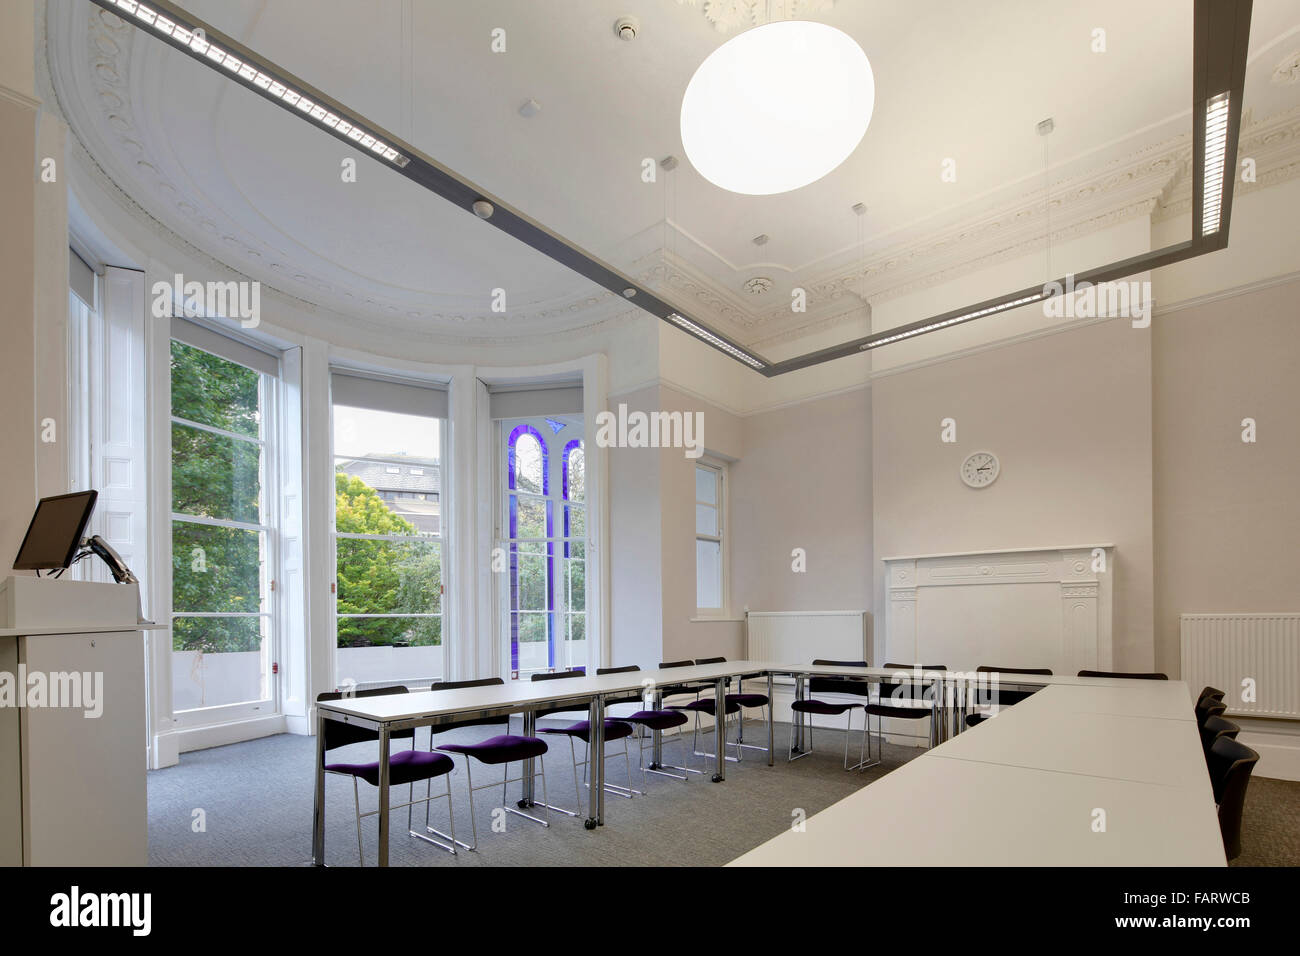 Merveilleux Tyndalls Park Road Refurbishment Of University Teaching And Administration  Spaces A Room With A Large Screen Tables And Chairs.